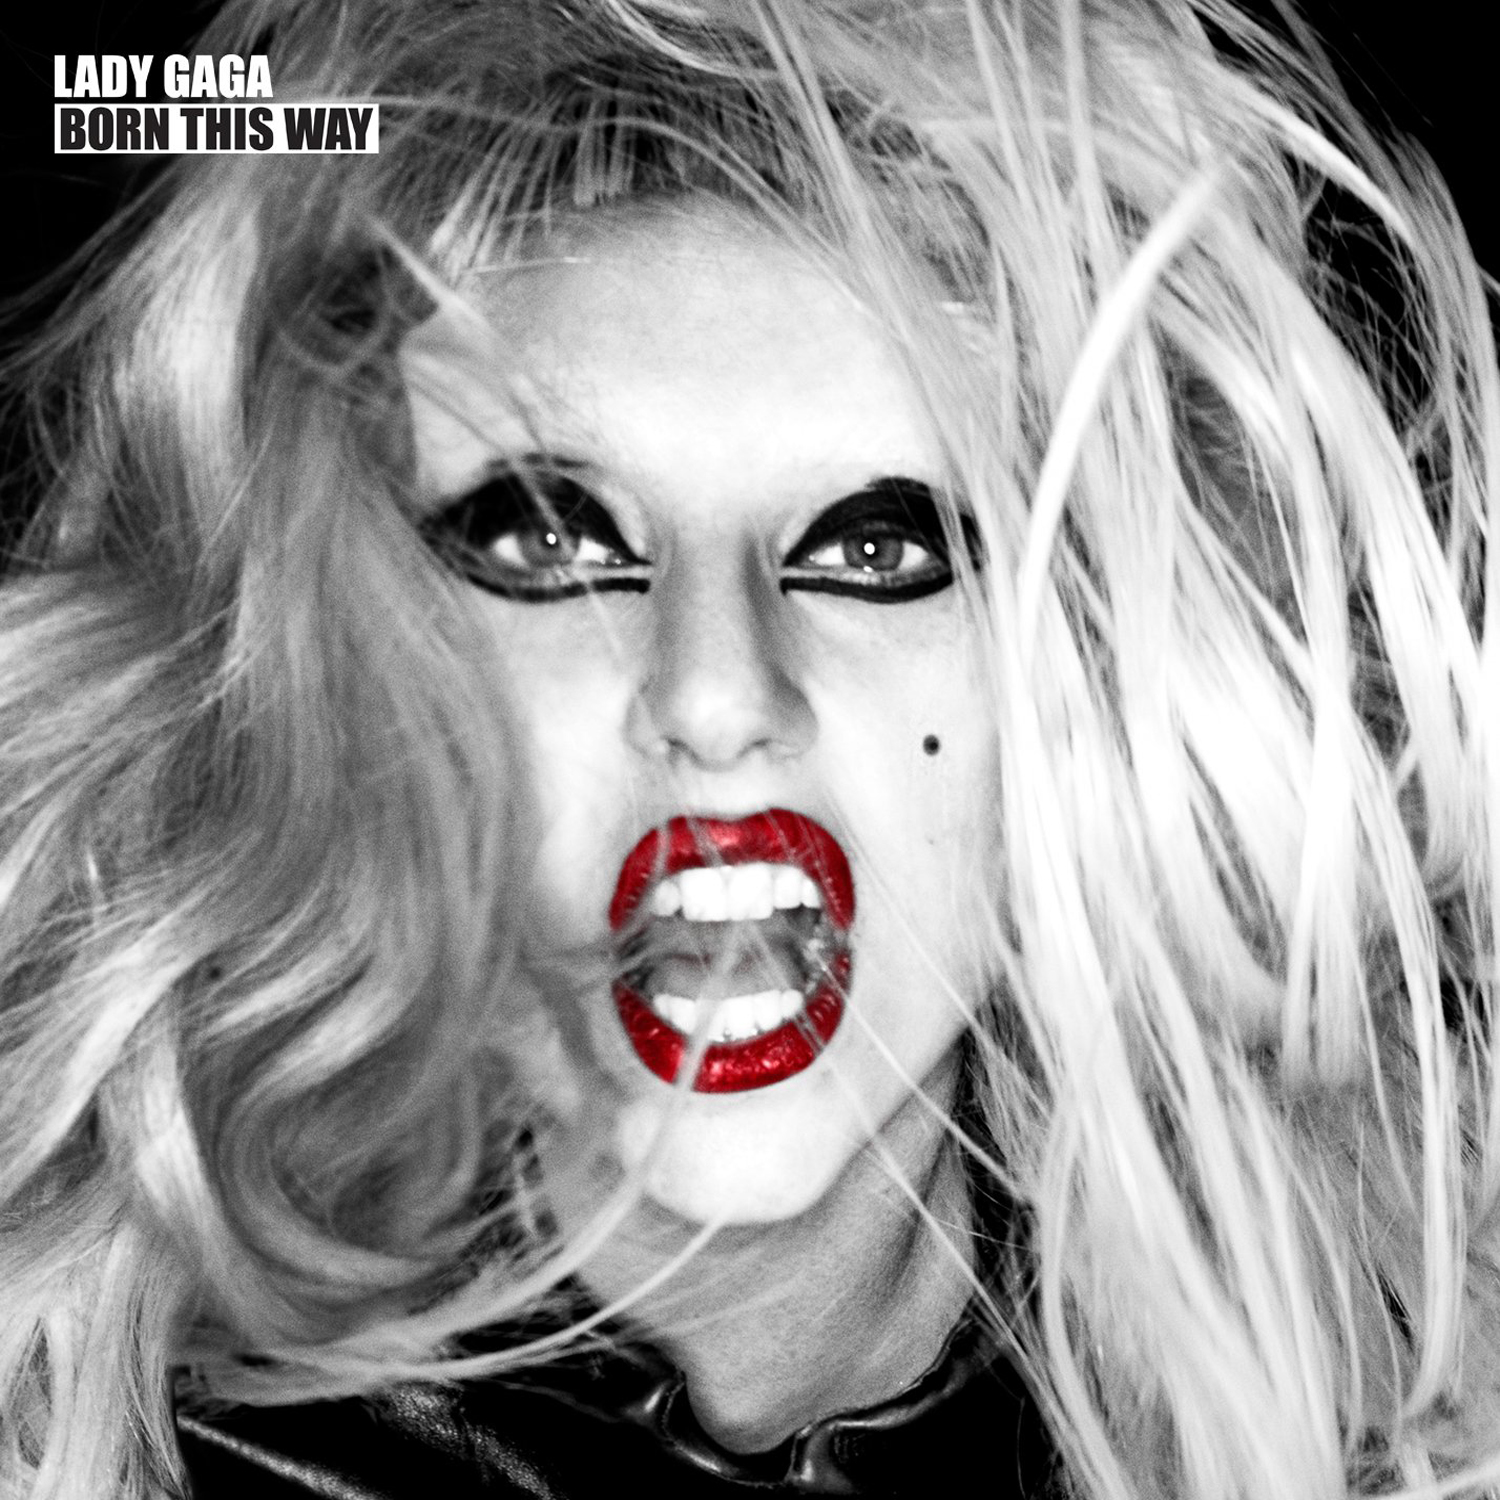 http://1.bp.blogspot.com/--lmwKyp8fS4/TcAEPki7WVI/AAAAAAAAAAg/nrSNLCLPj10/s1600/Lady-GaGa-Born-This-Way-Official-Album-Cover-Deluxe-Edition.jpg